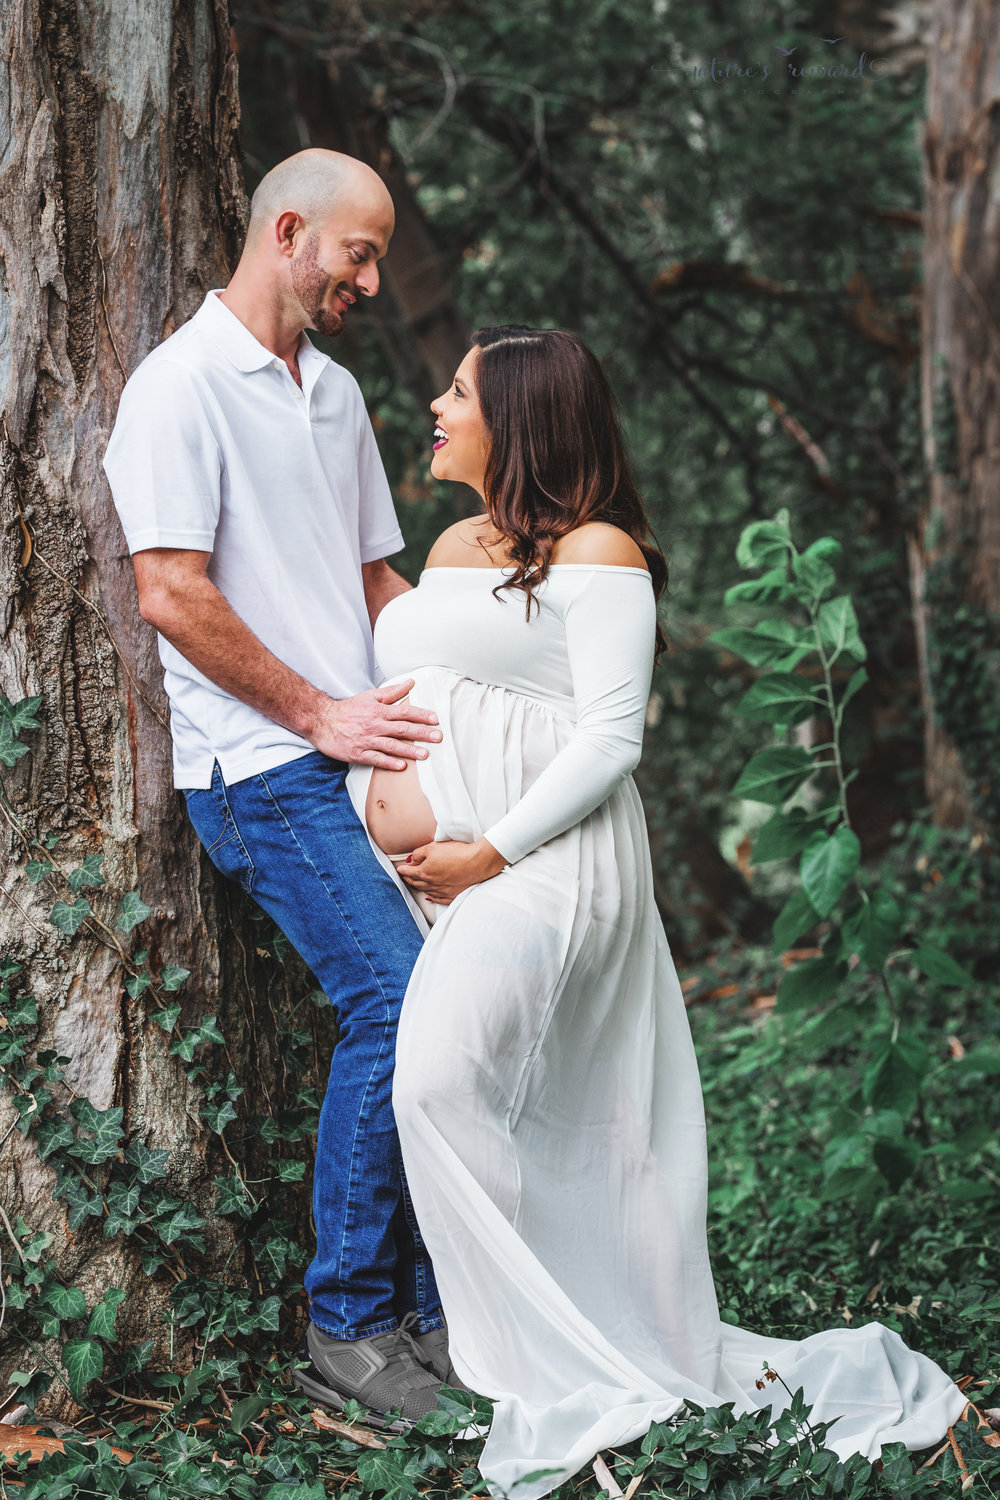 Beautiful couple celebrating the upcoming birth of their 3rd son in this maternity session portrait in white by Nature's Reward Photography.